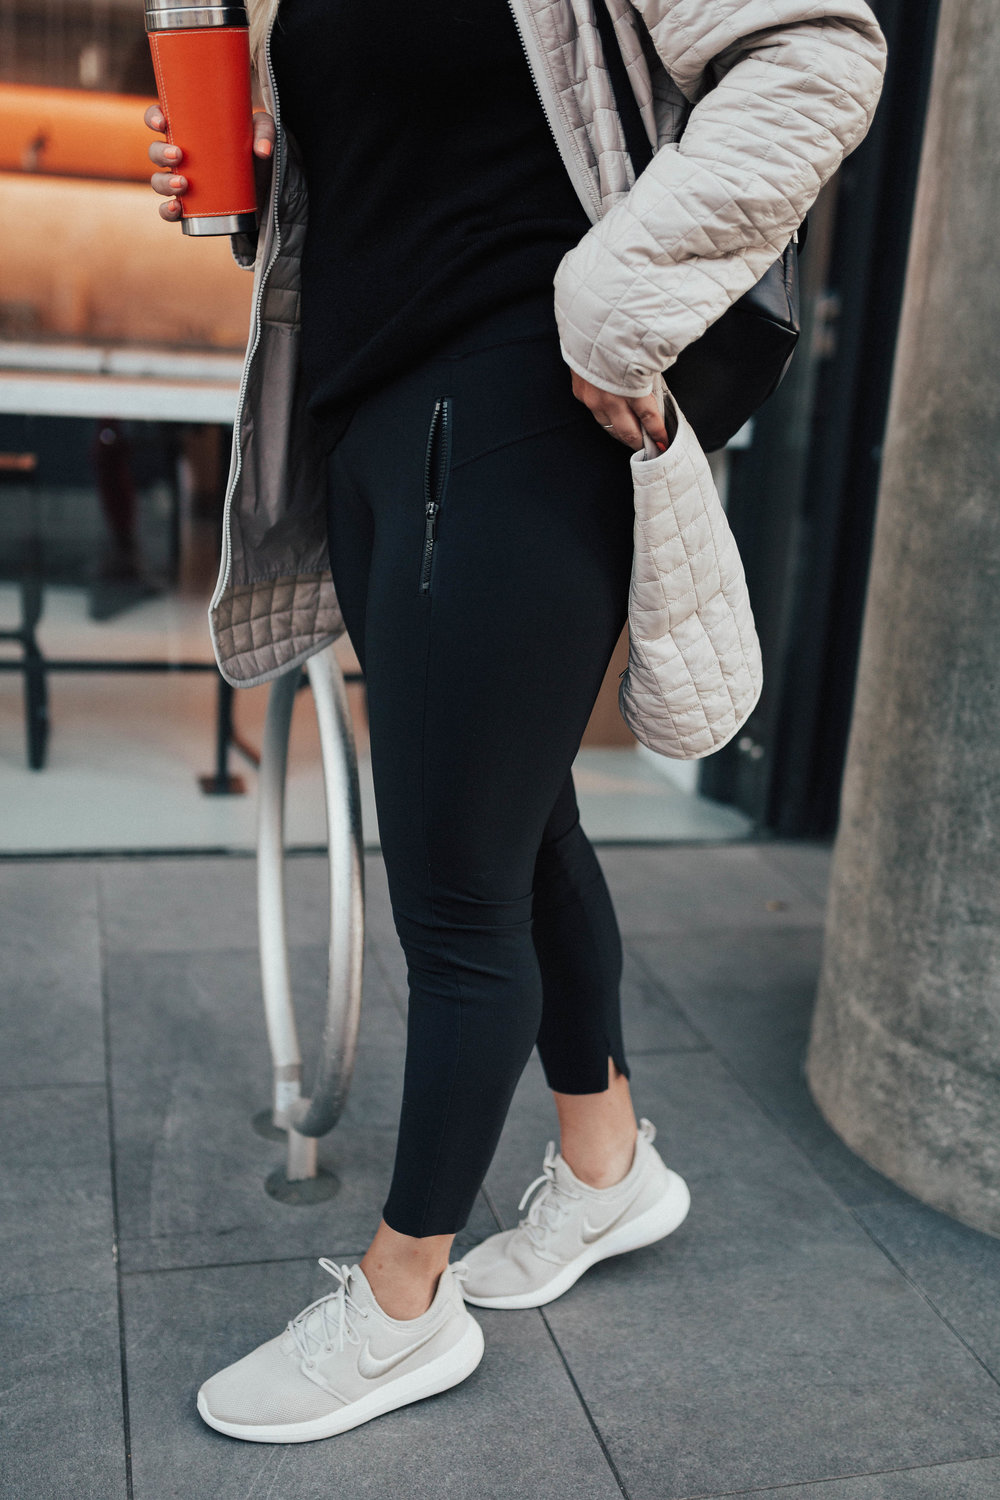 via Thea: WorkInYourWorkout with Athleta